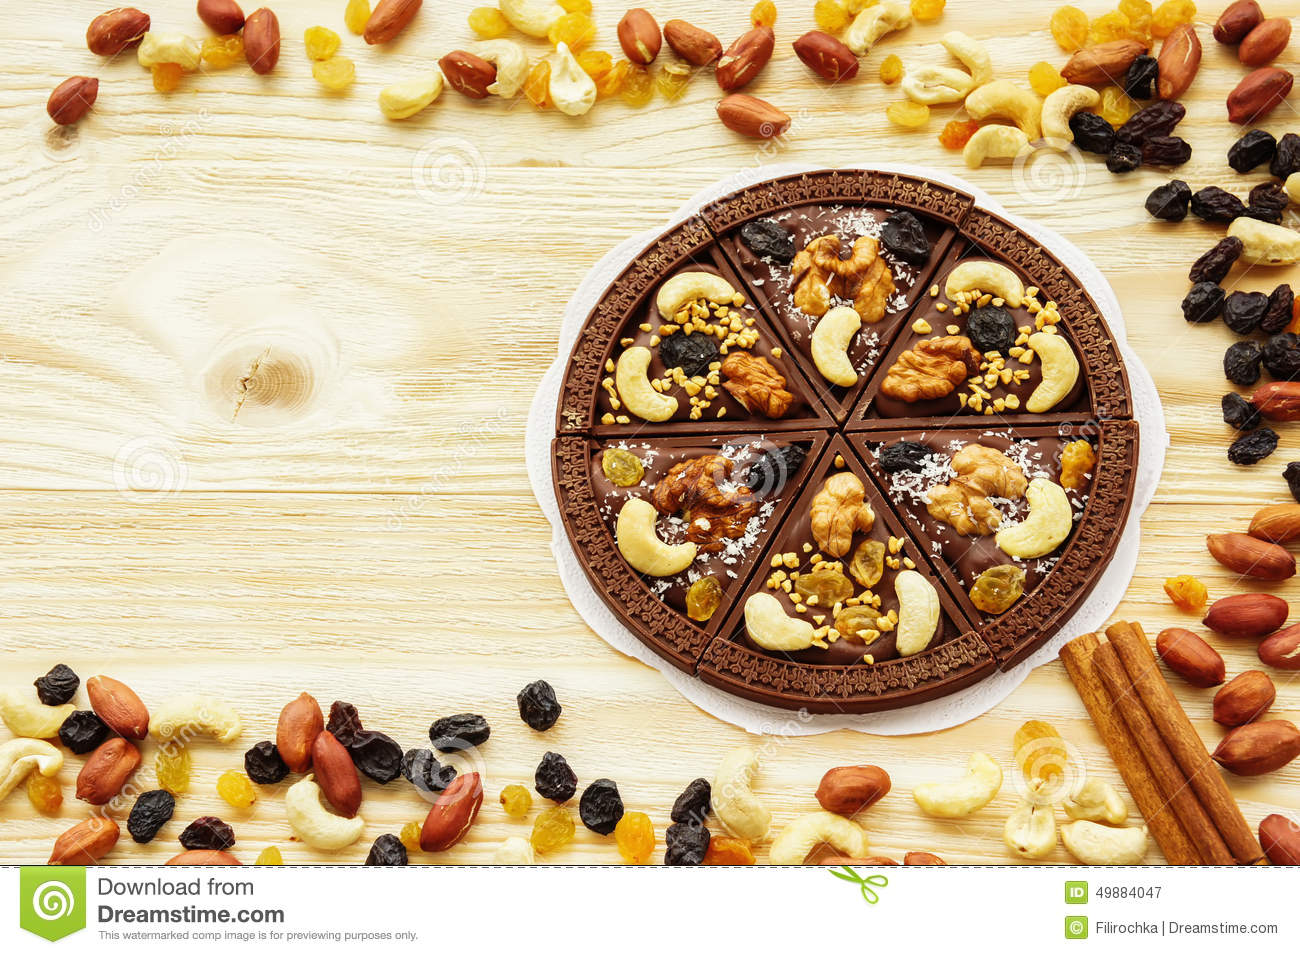 Dessert Chocolate Pizza With Raisins And Nuts Stock Photo - Image ...